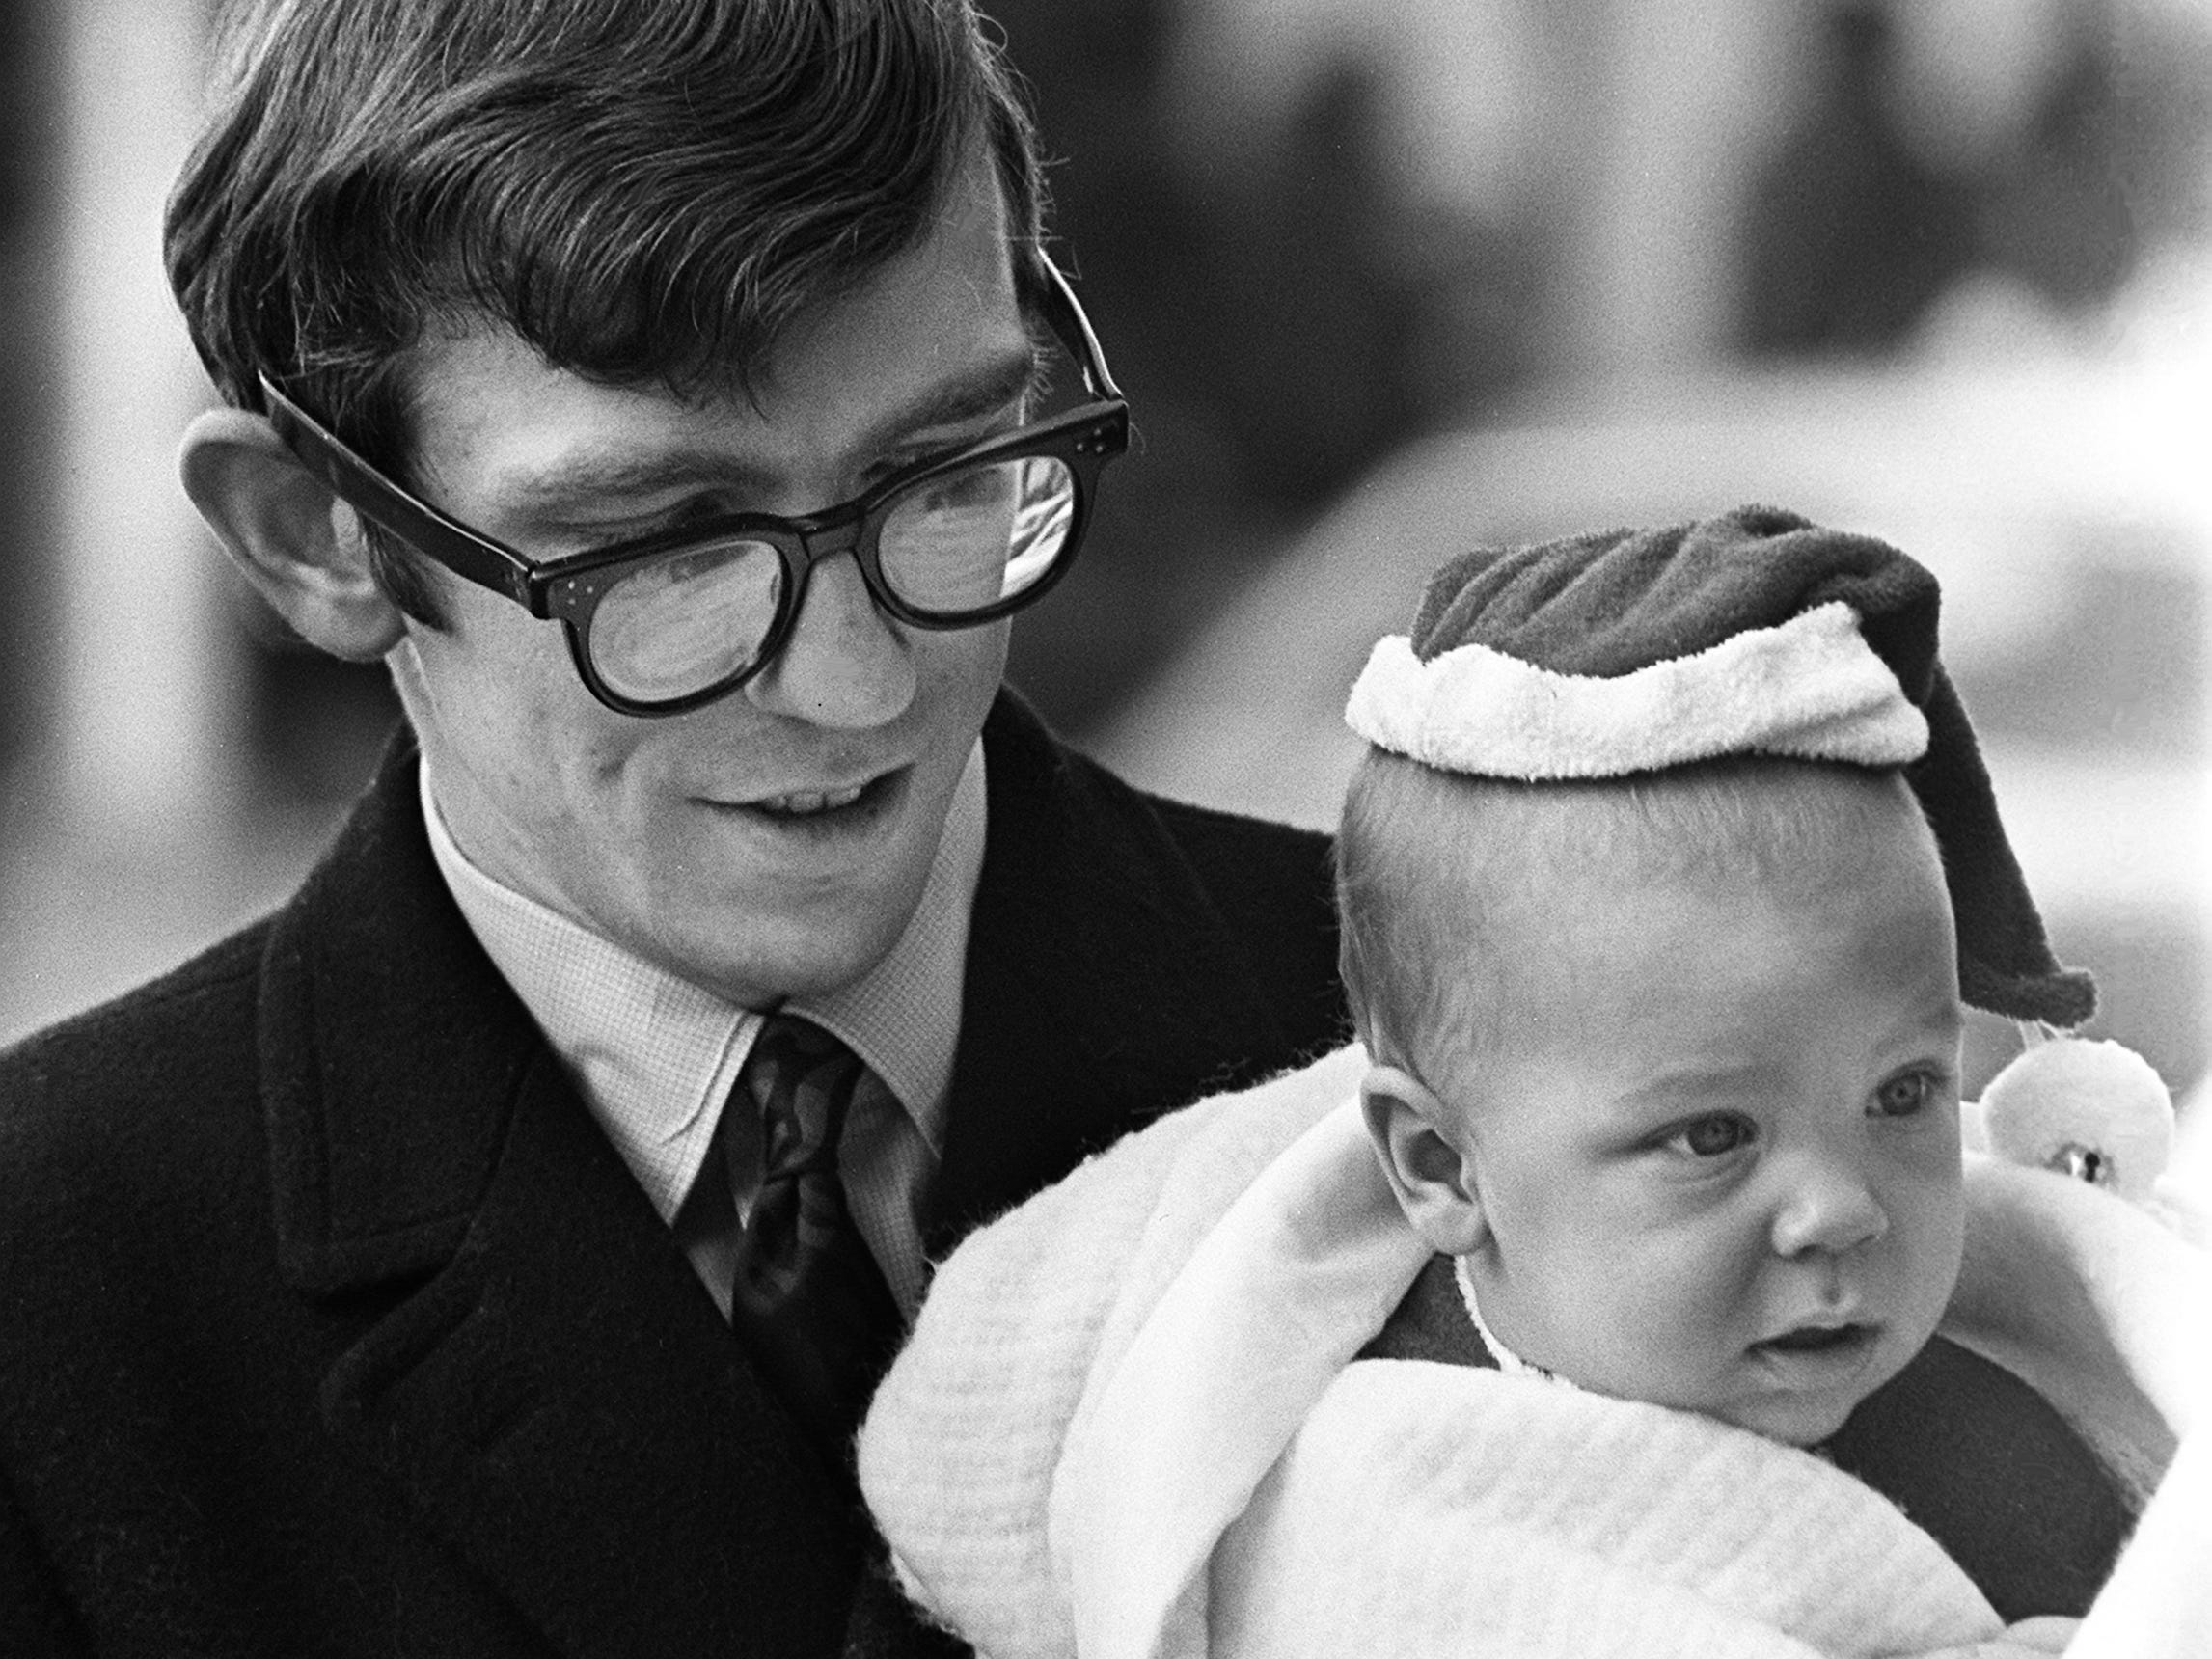 Christopher Willy, six months old, appears not too happy about all this business of Christmas shopping as he accompanies by his father, David Willy of Nashville, on a trip downtown Nov. 30, 1968.